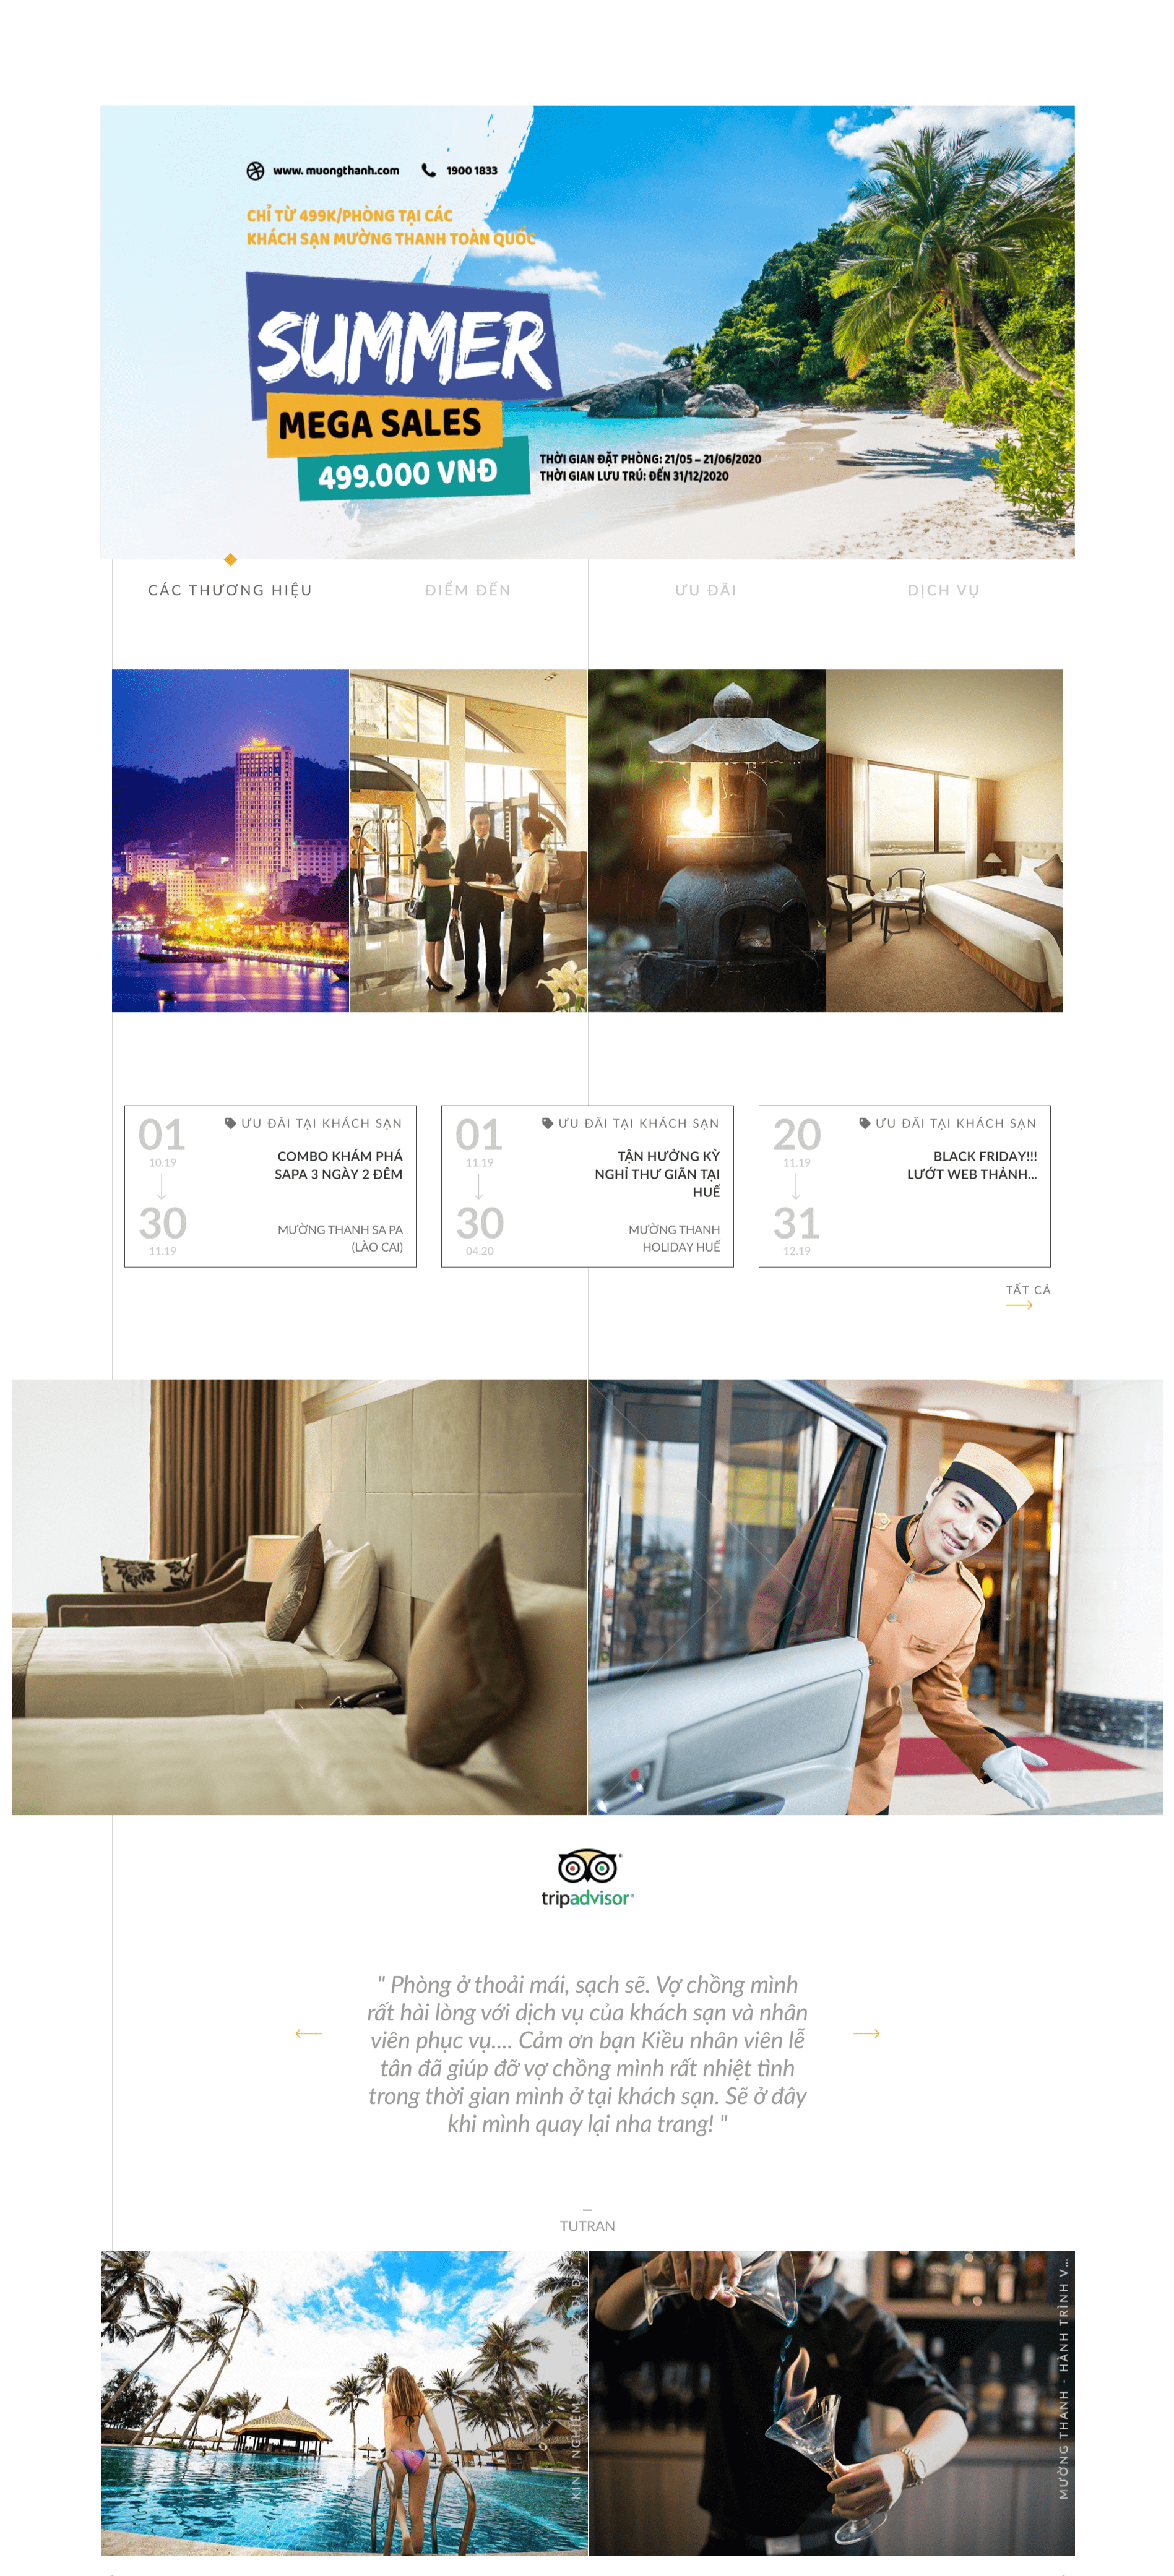 Lam-website-muongthanh